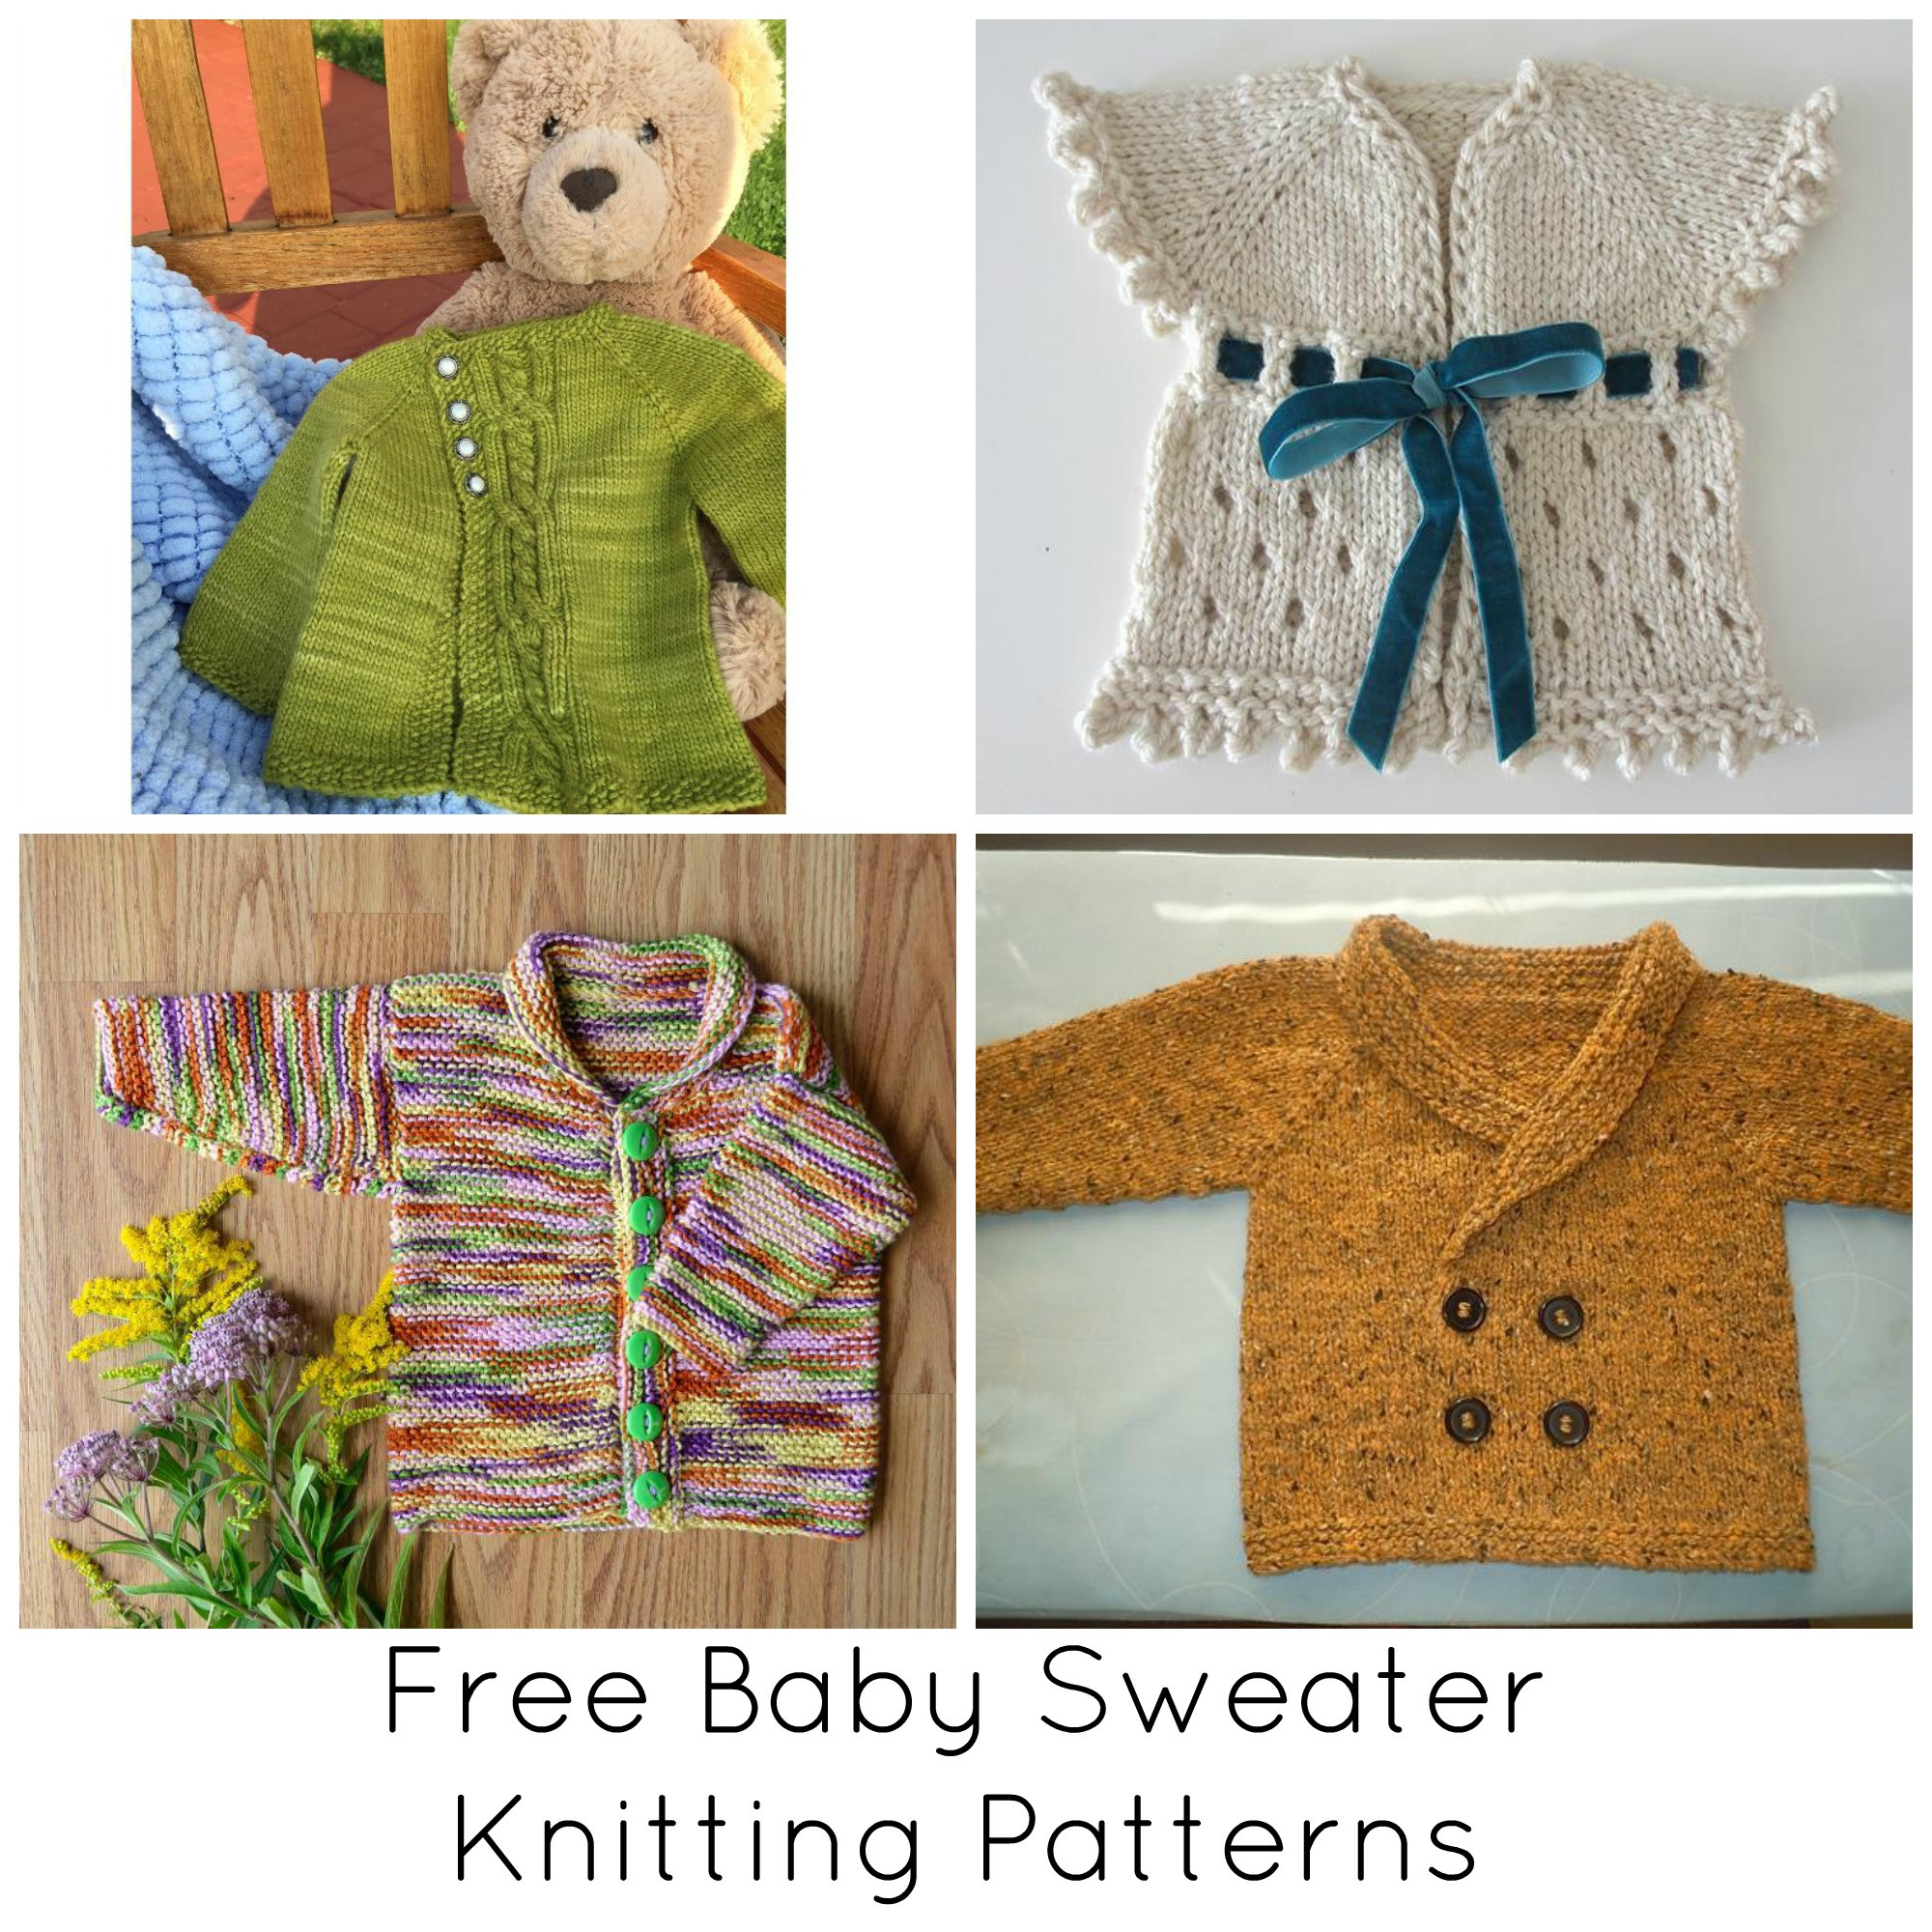 Baby Sweater Patterns Unique Our Favorite Free Baby Sweater Knitting Patterns Of Beautiful 41 Images Baby Sweater Patterns